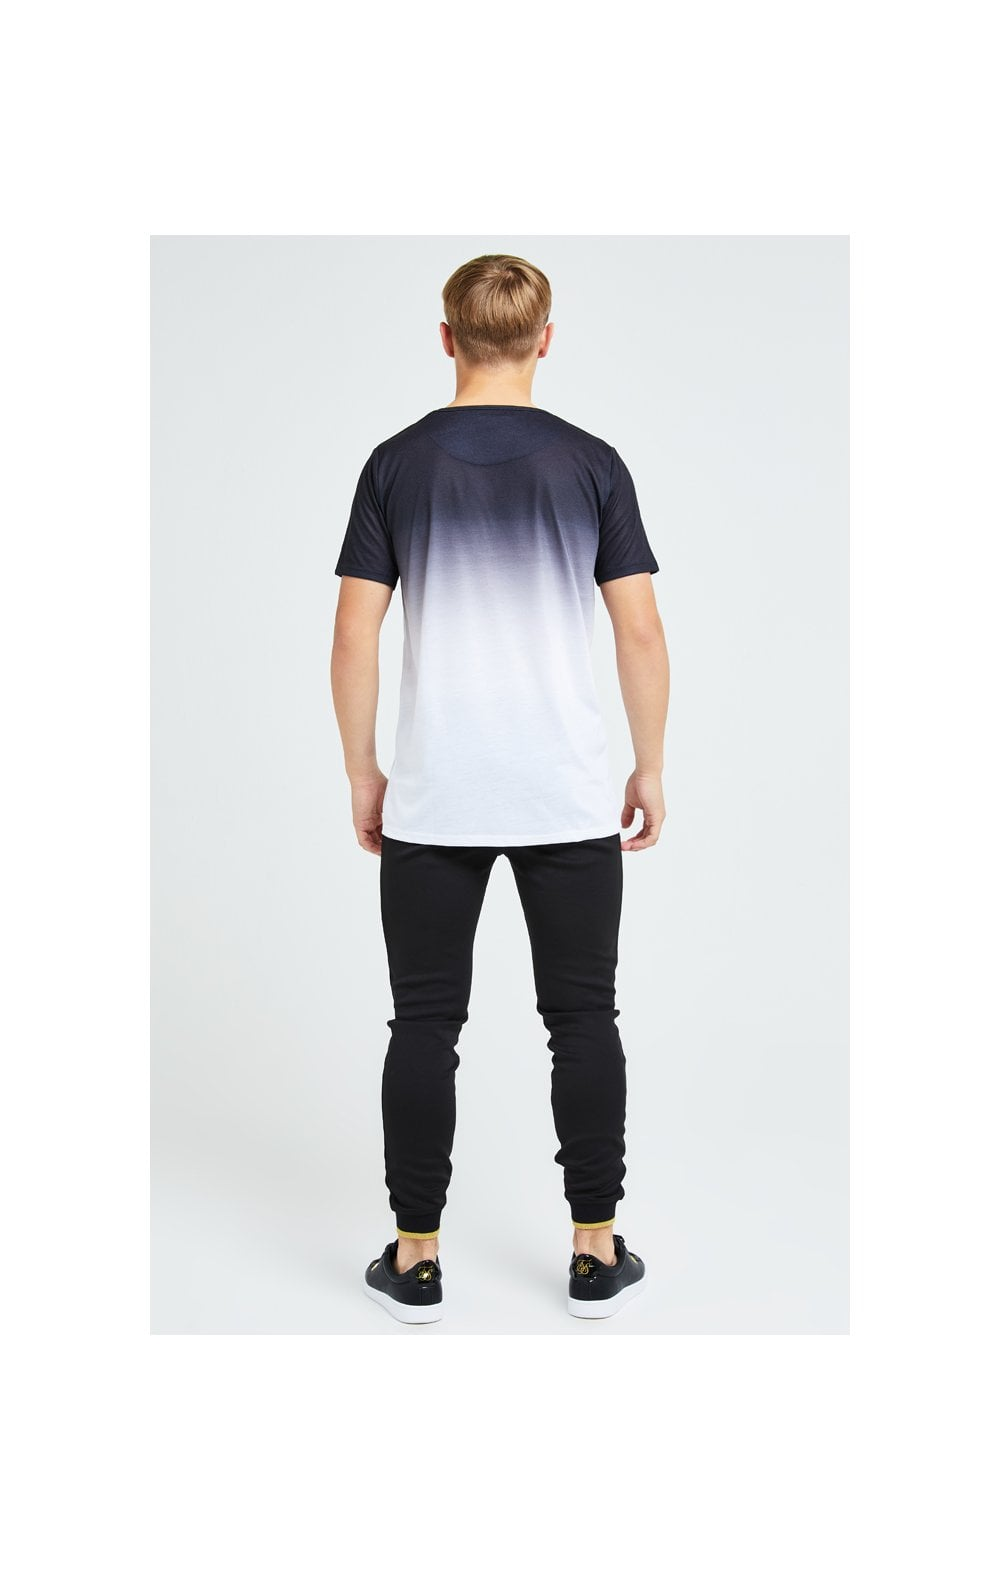 Illusive London Sovereign Fade Tee - Black & White (5)